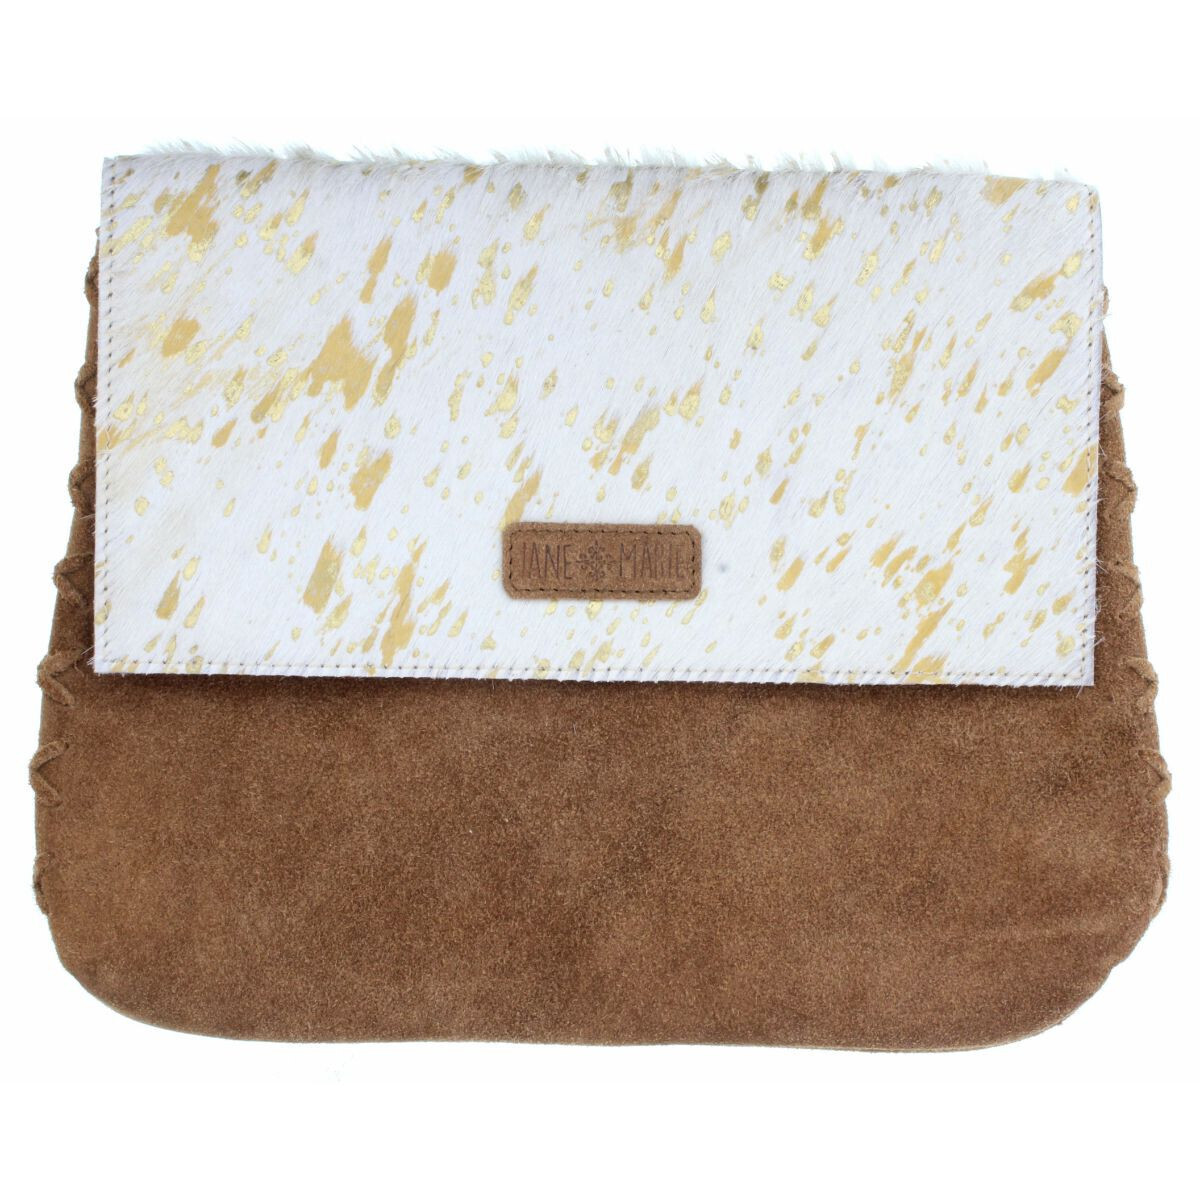 Mabel Crossbody White/Gold Cowhide